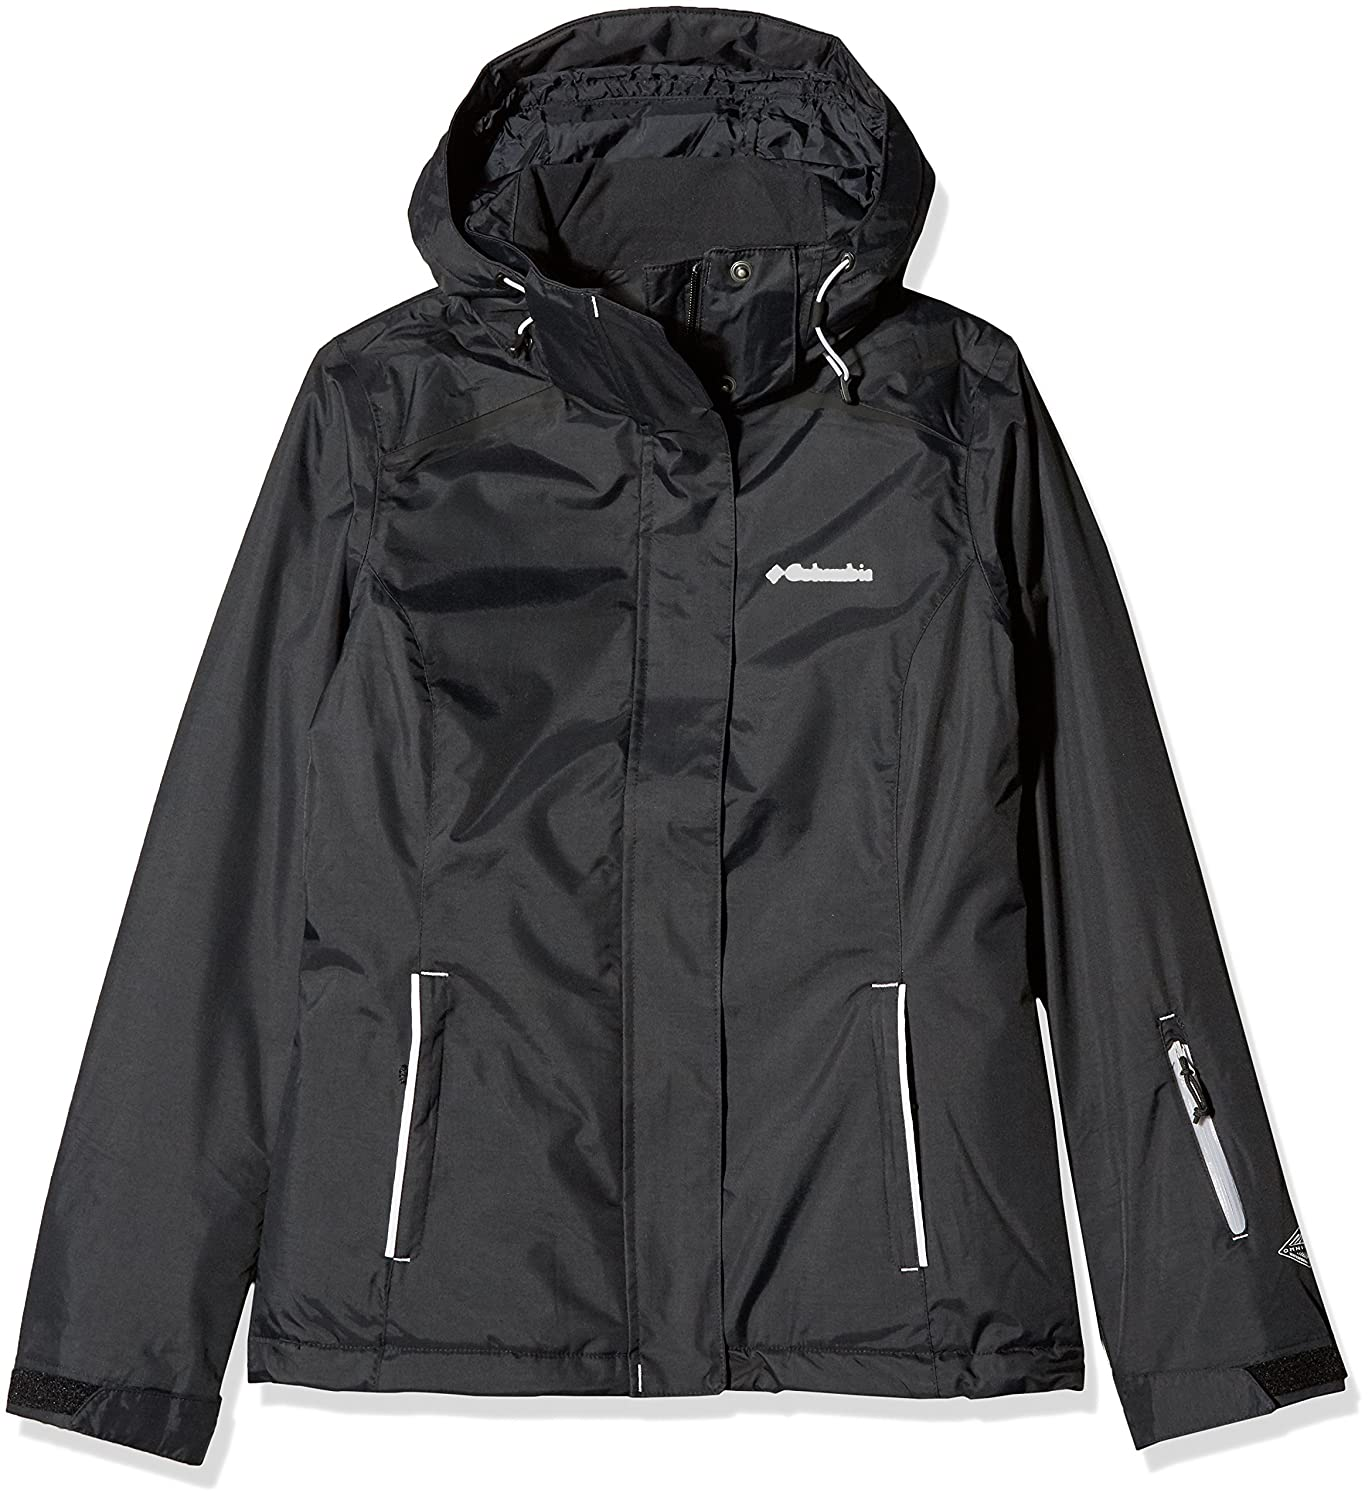 Columbia Chaqueta impermeable para mujer, On the Slope Jacket, Nailon, Negro, Talla M, 1748321